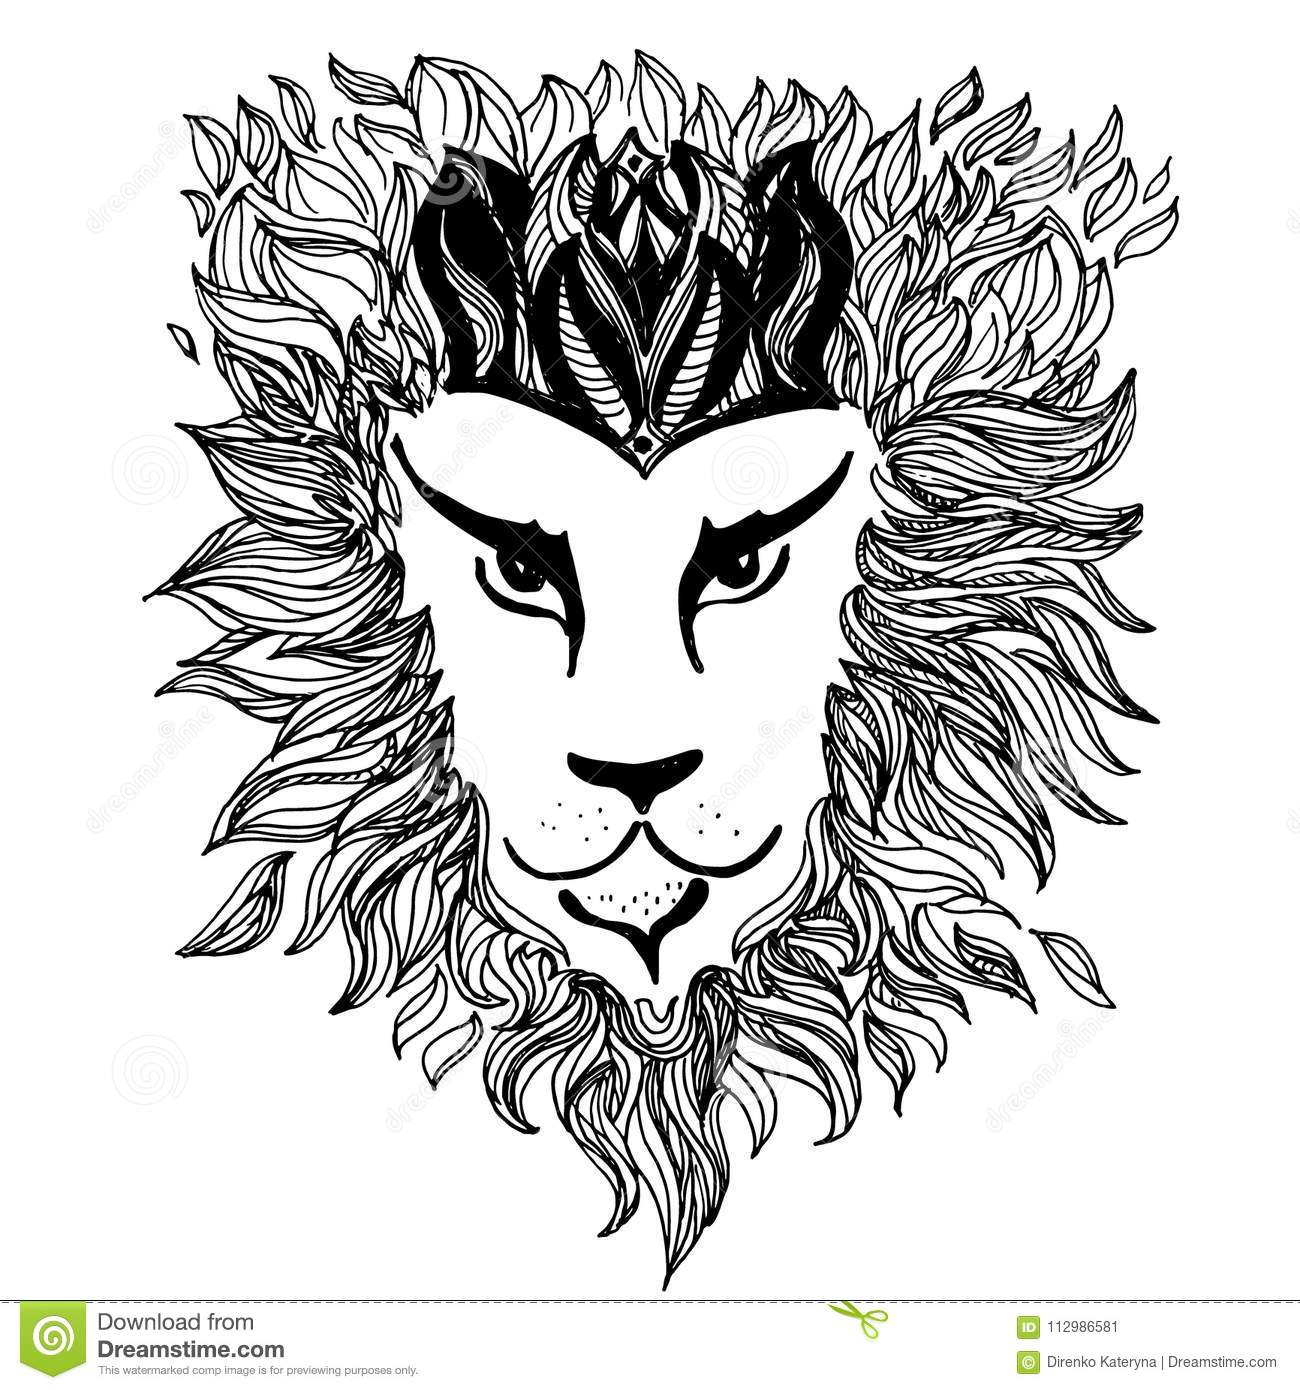 The Lion Black And White Doodle Vector Illustration Stock